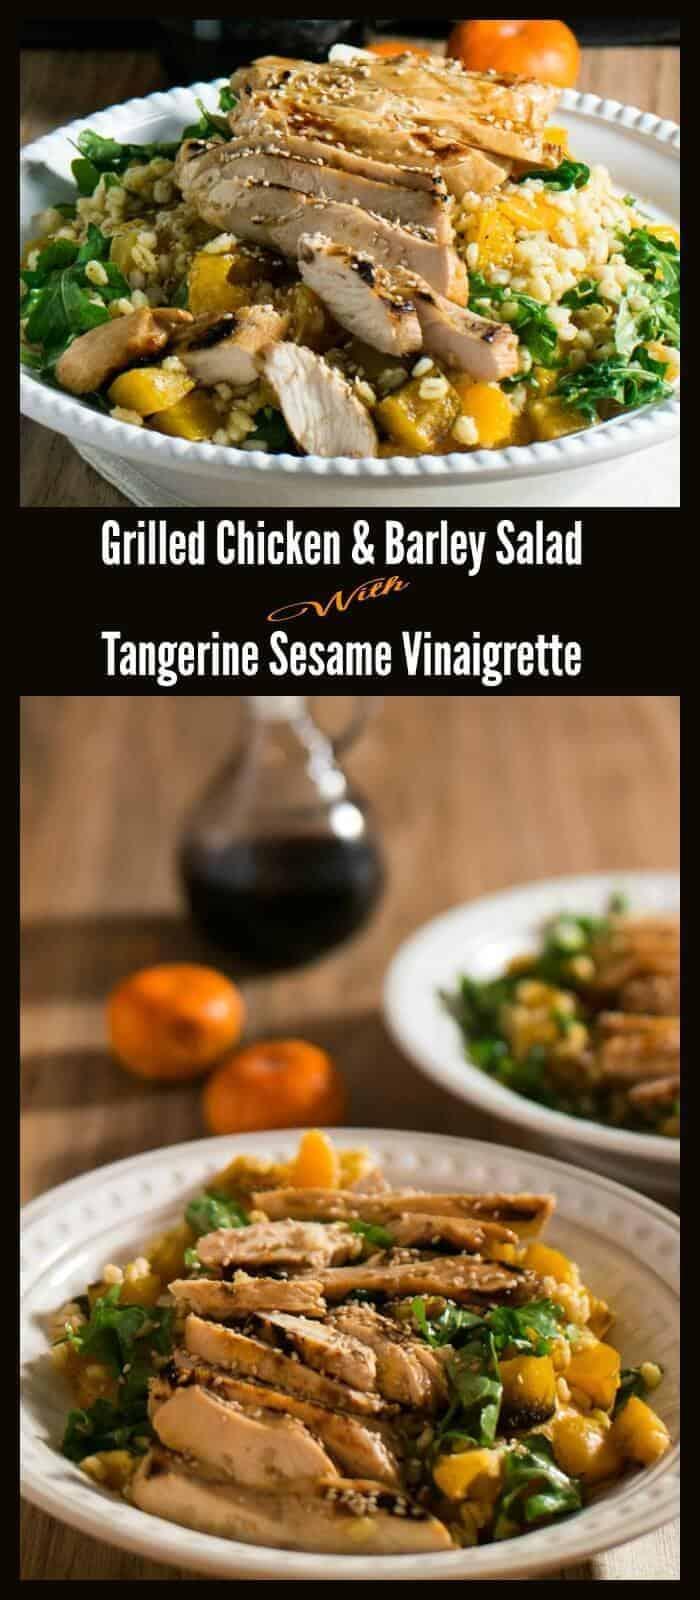 Grilled Chicken and Barley Salad with Tangerine Sesame Vinaigrette - healthy roasted root veggies, vitamin-rich greens, sweet citrus come together in a flavorful and super-healthy Asian-inspired main dish salad!